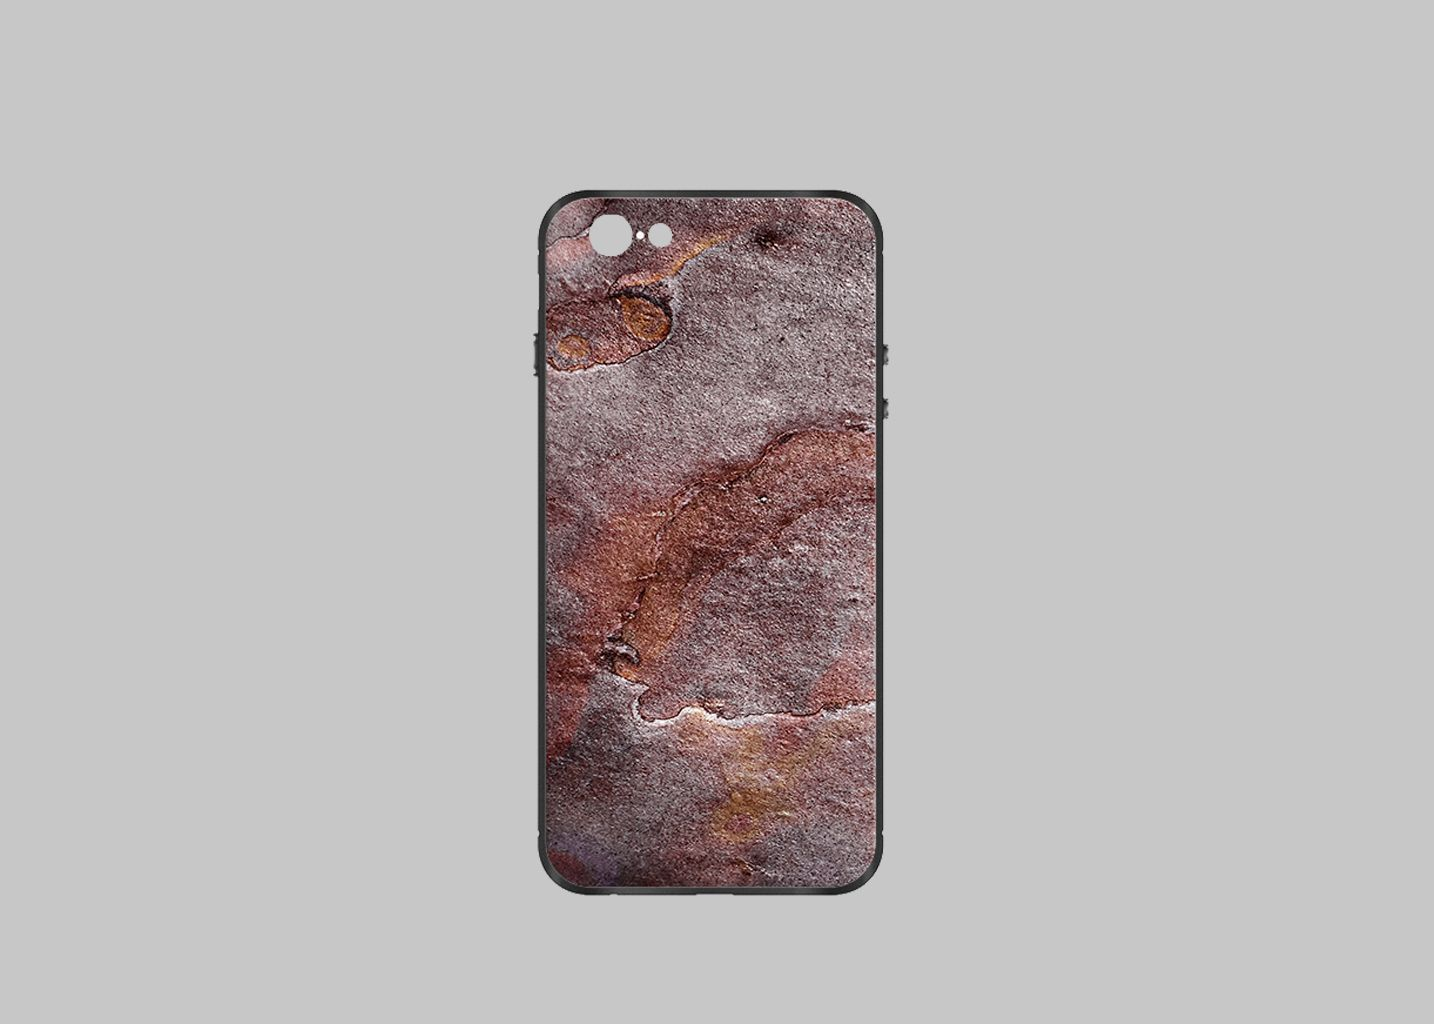 Coque Iphone 6 Vulcano Dust - Roxxlyn